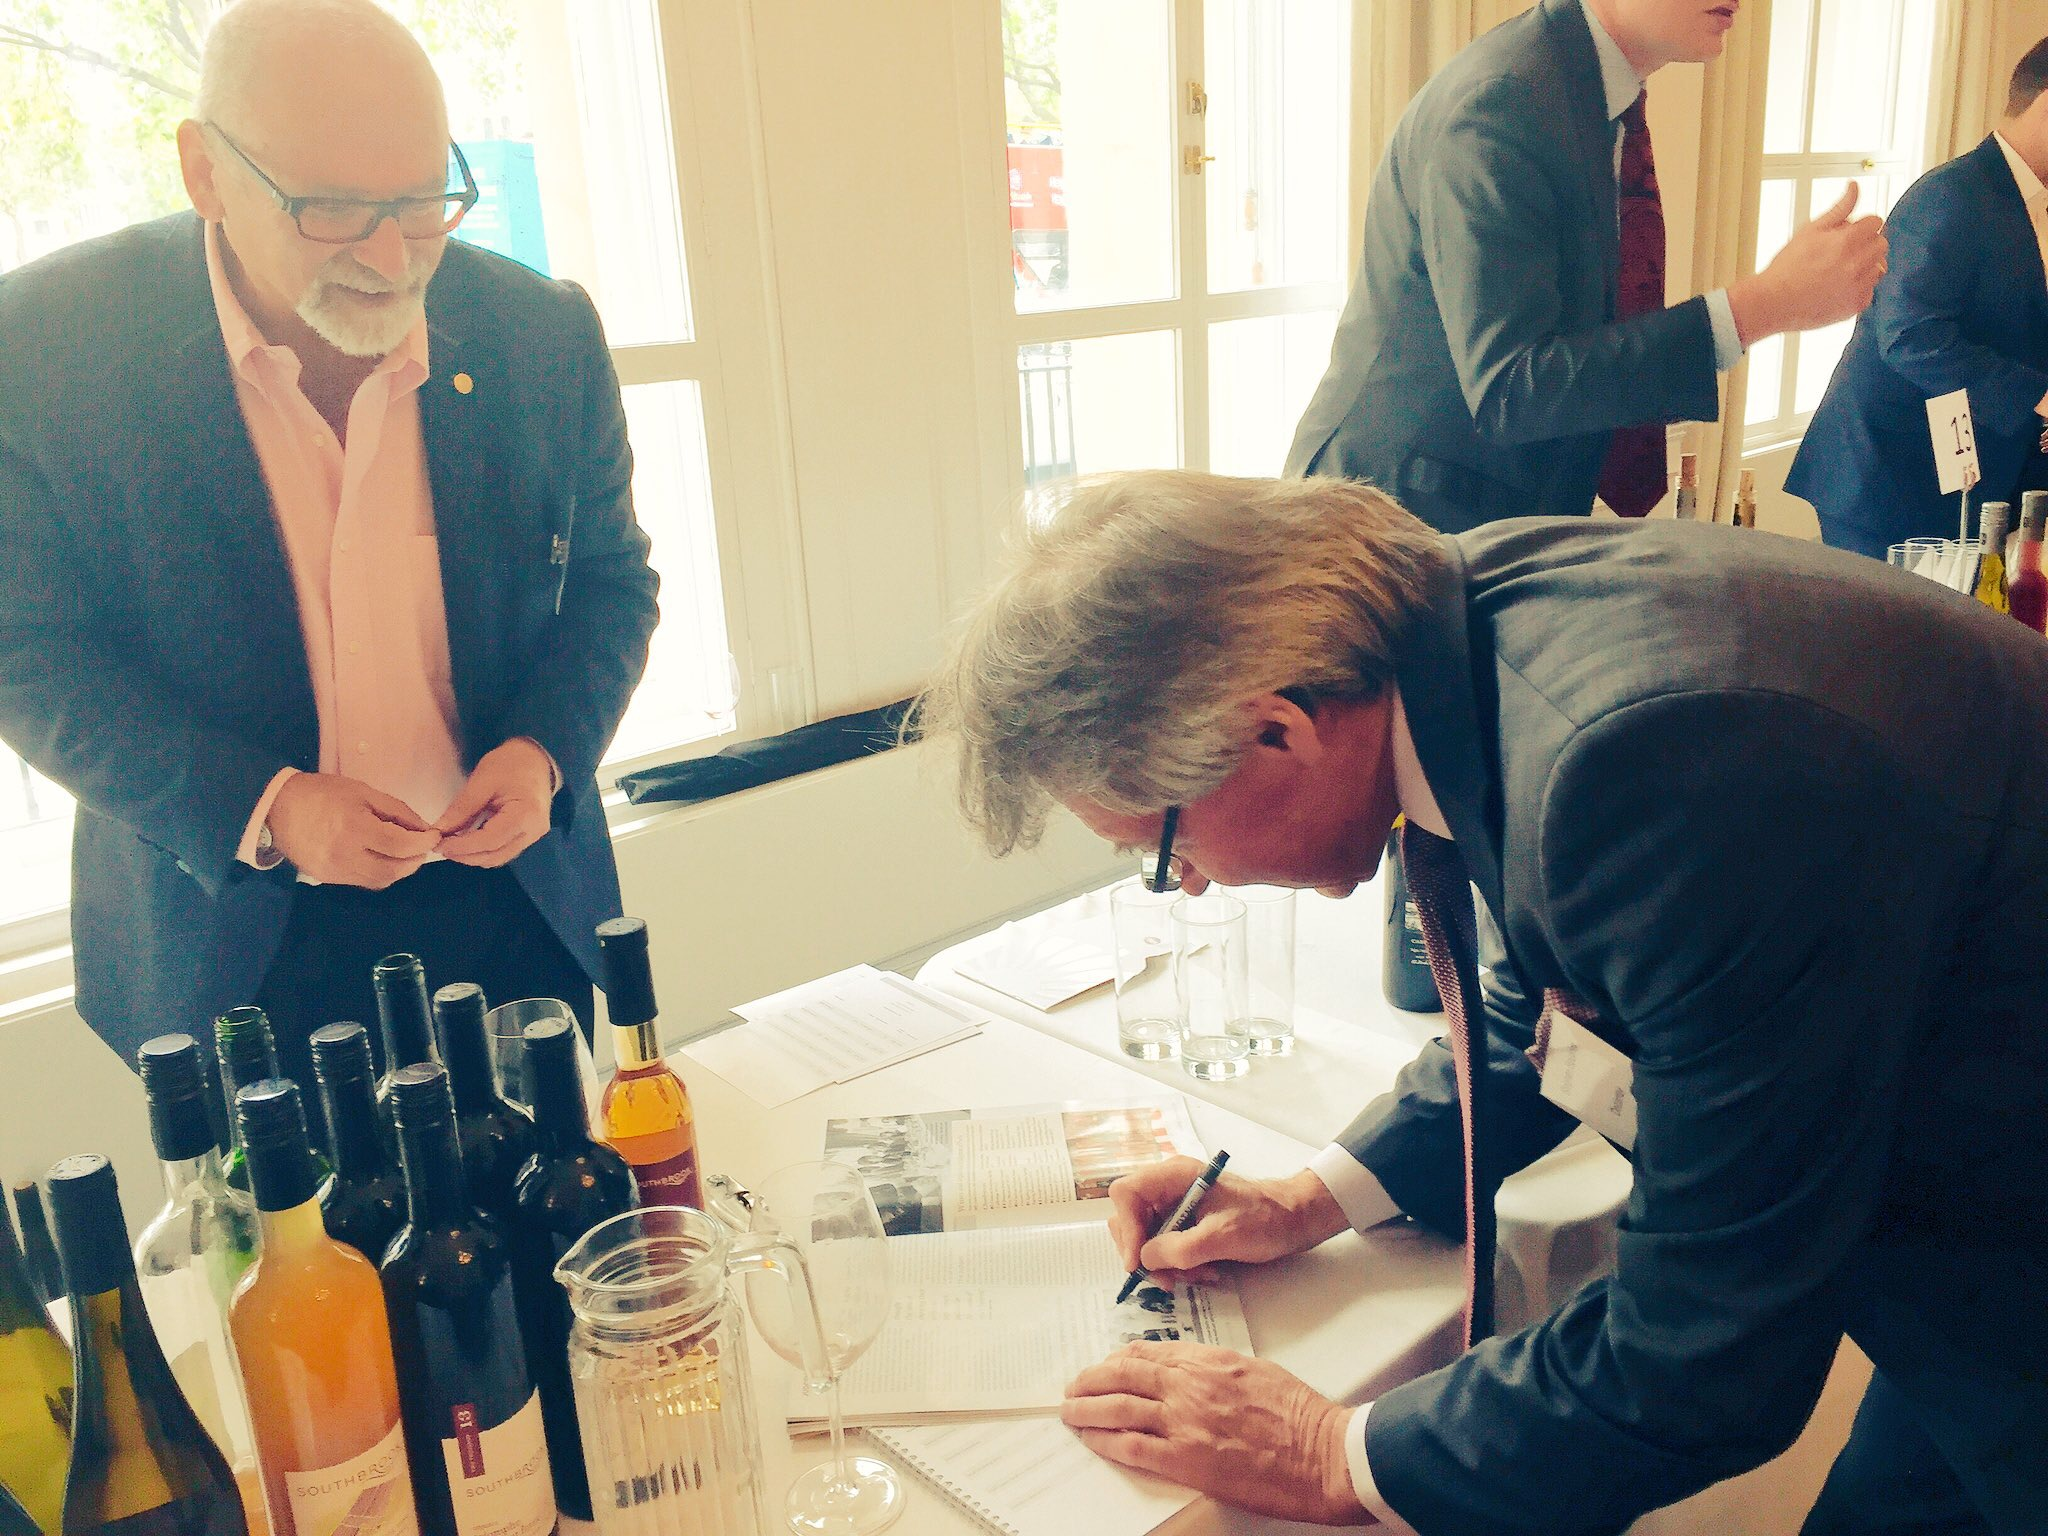 Stephen Spurrier signing an autograph for Bill Redelmeir, founder of Southbrook winery in Ontario, Canada